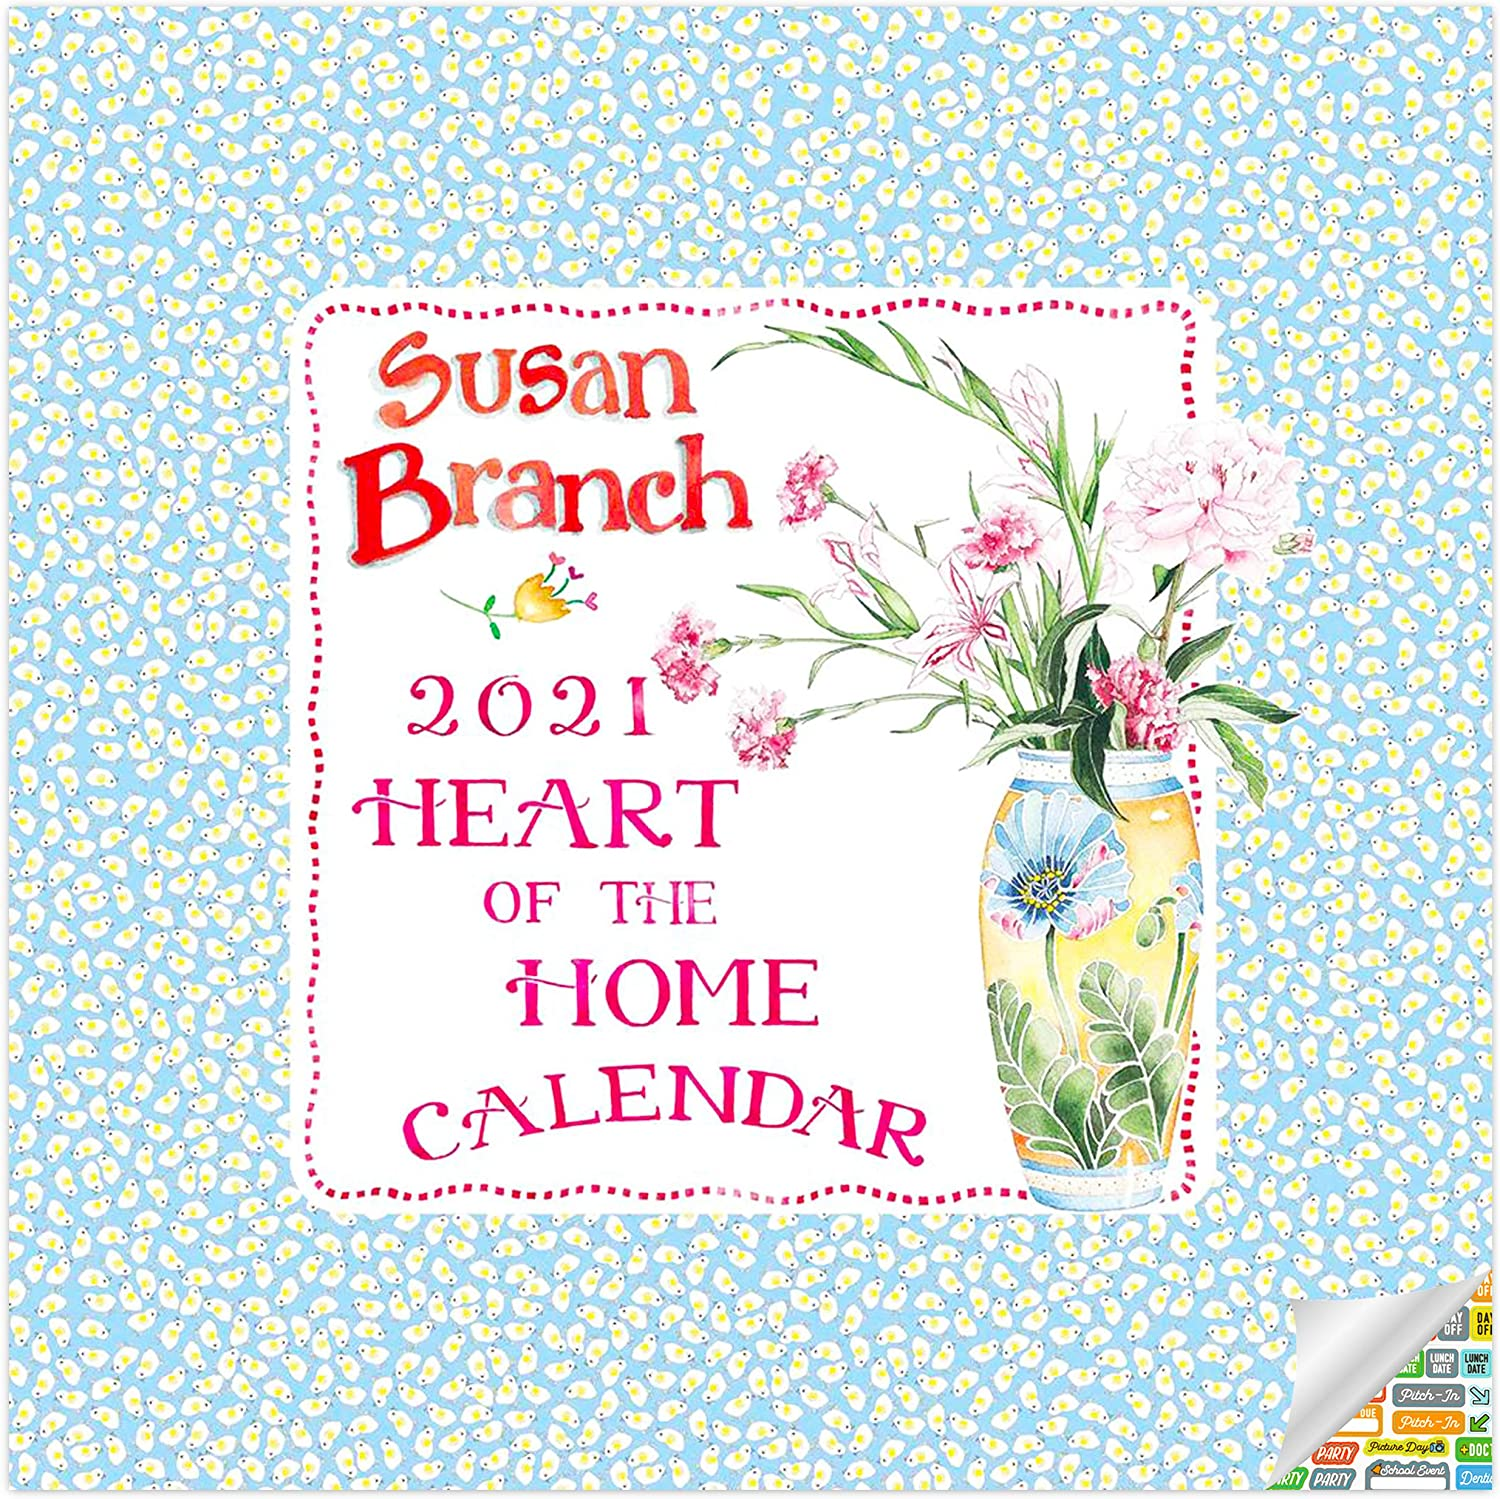 Susan Branch - Heart of The Home Calendar 2021 Bundle - Deluxe 2021 Susan Branch Wall Calendar with Over 100 Calendar Stickers